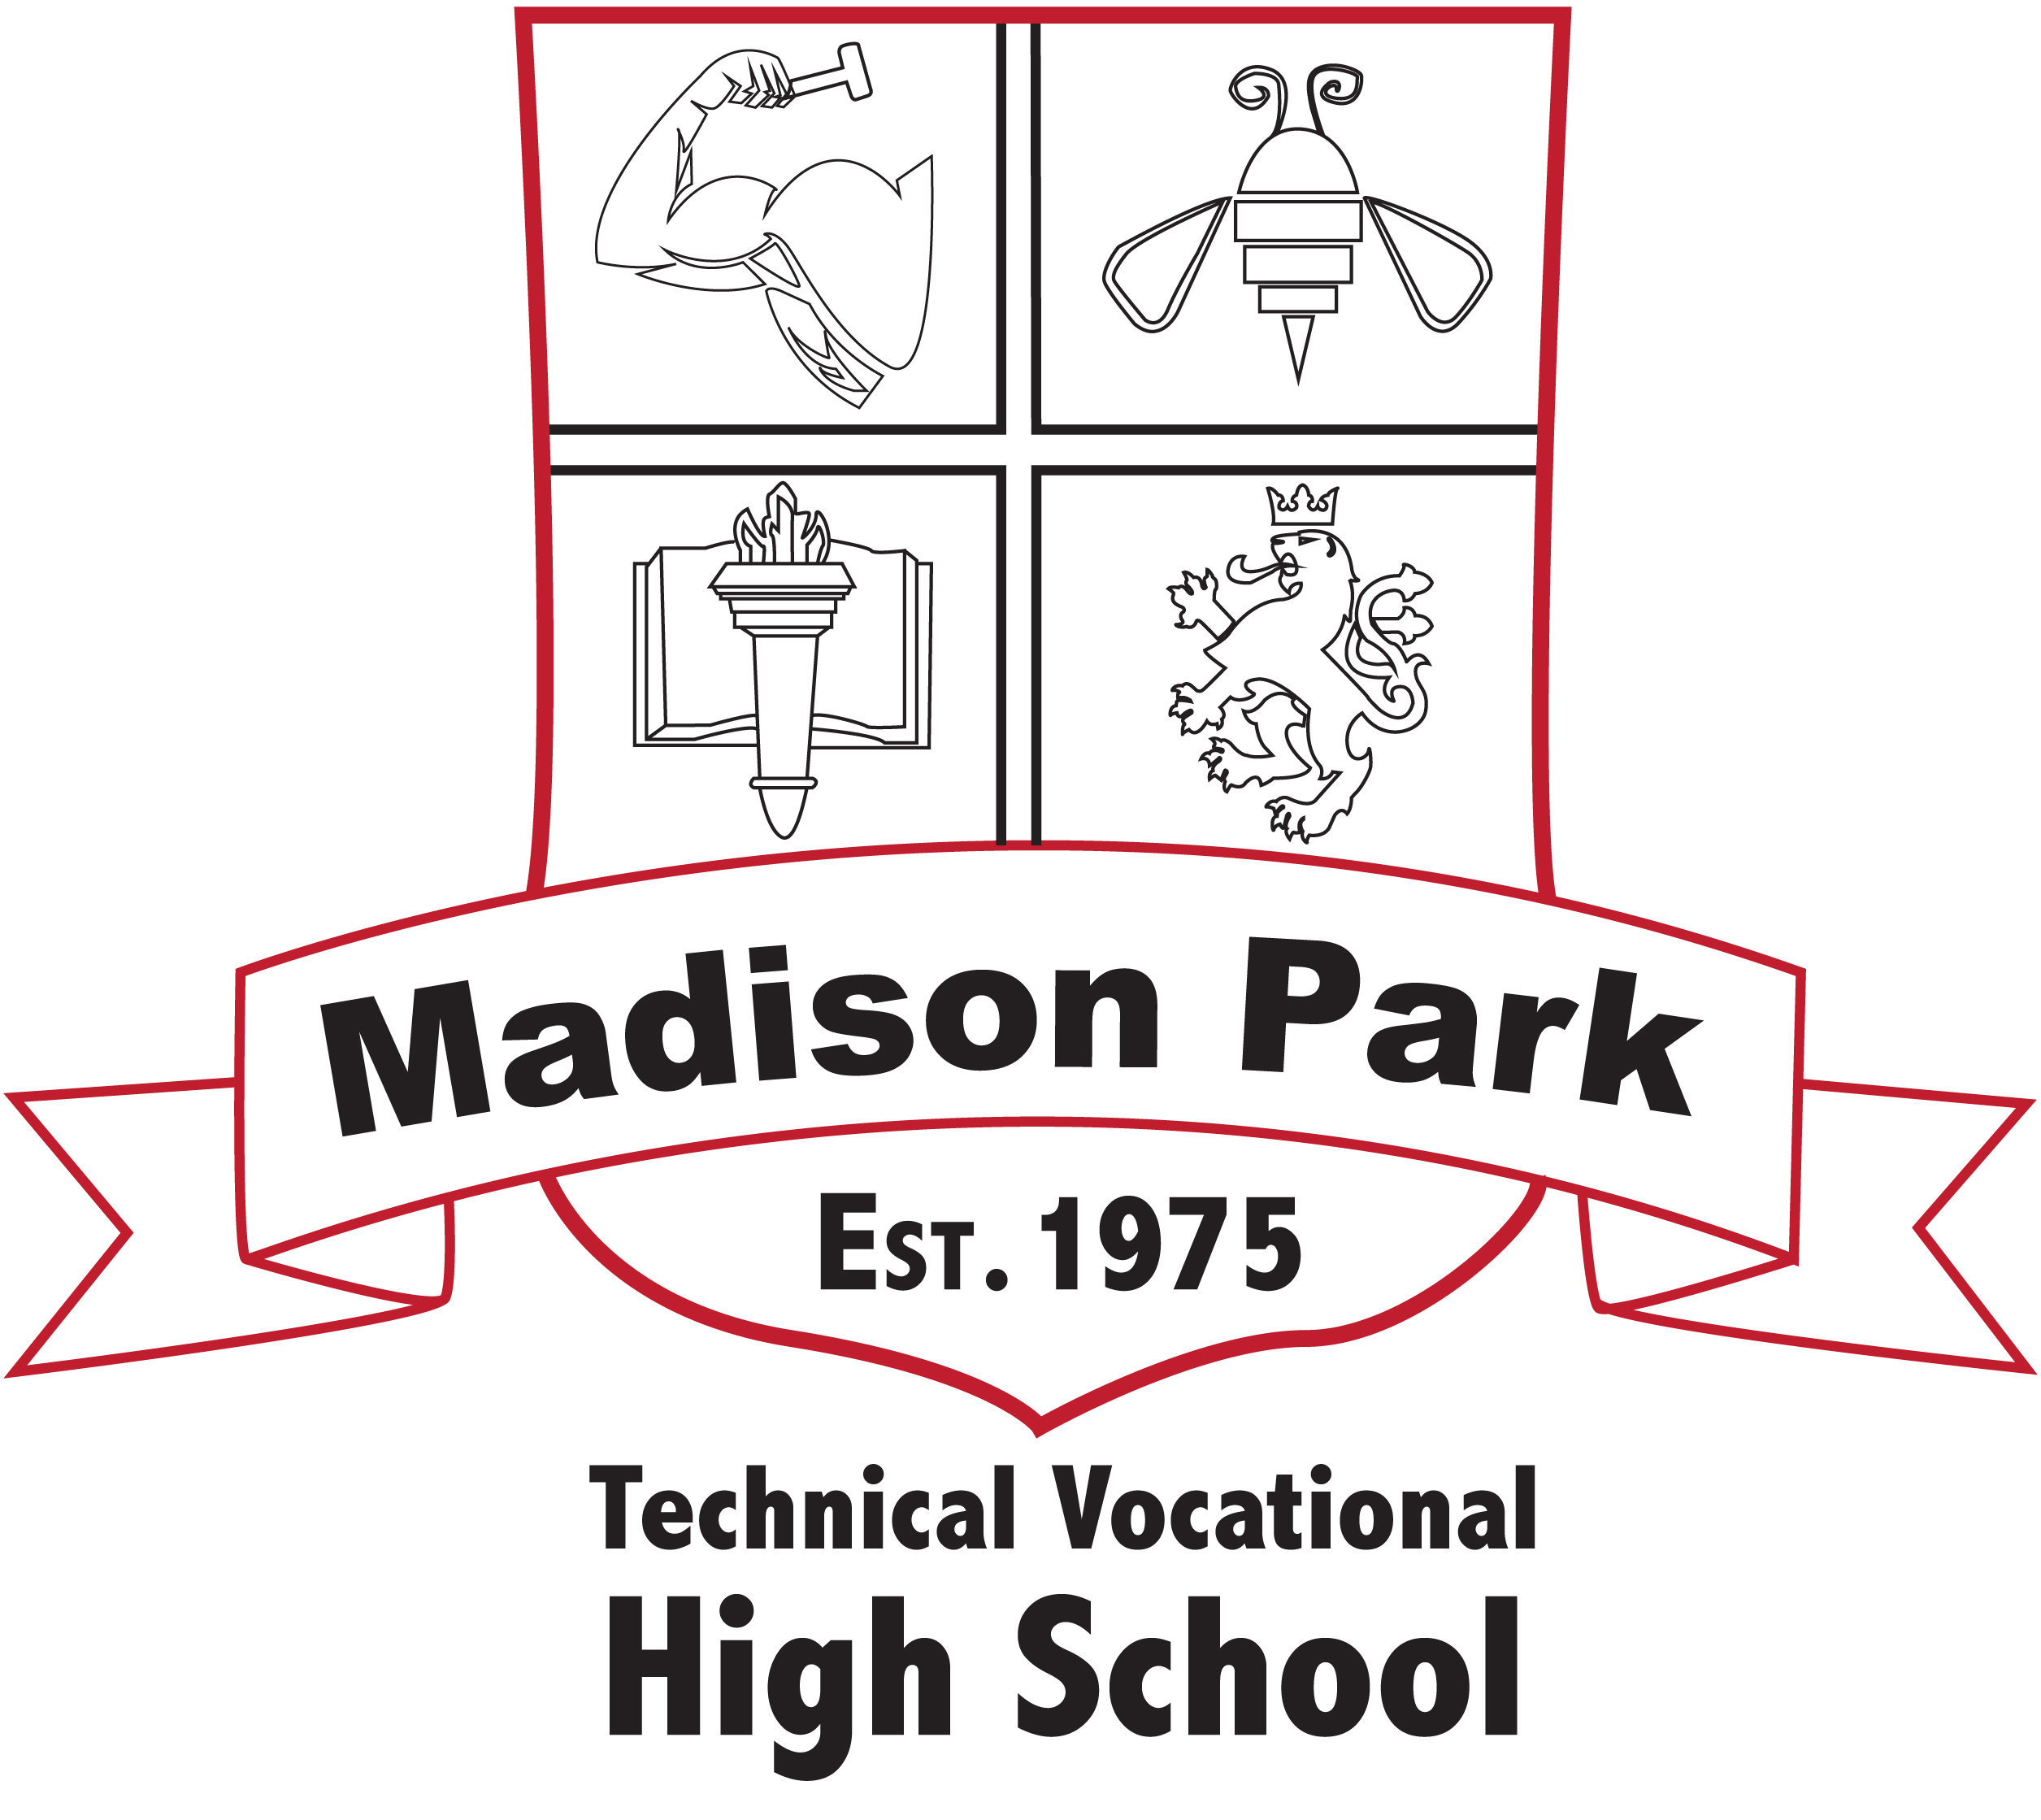 Madison Park Vocational High School